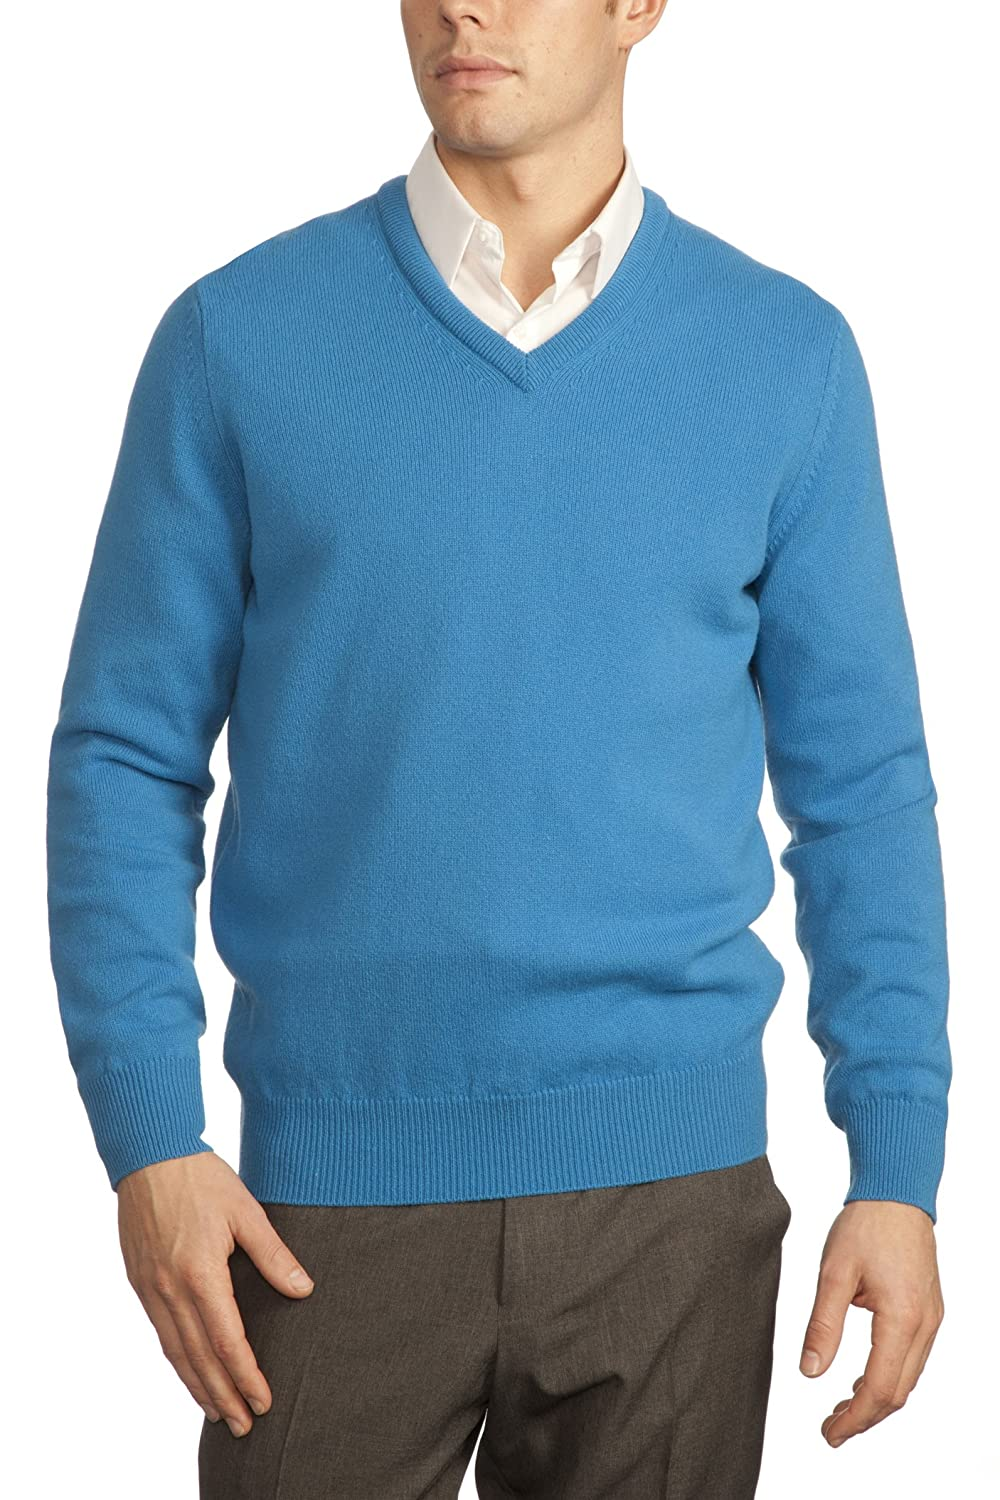 Great and British Knitwear Mens 100/% Lambswool Plain V Neck Jumper Made In Scotland